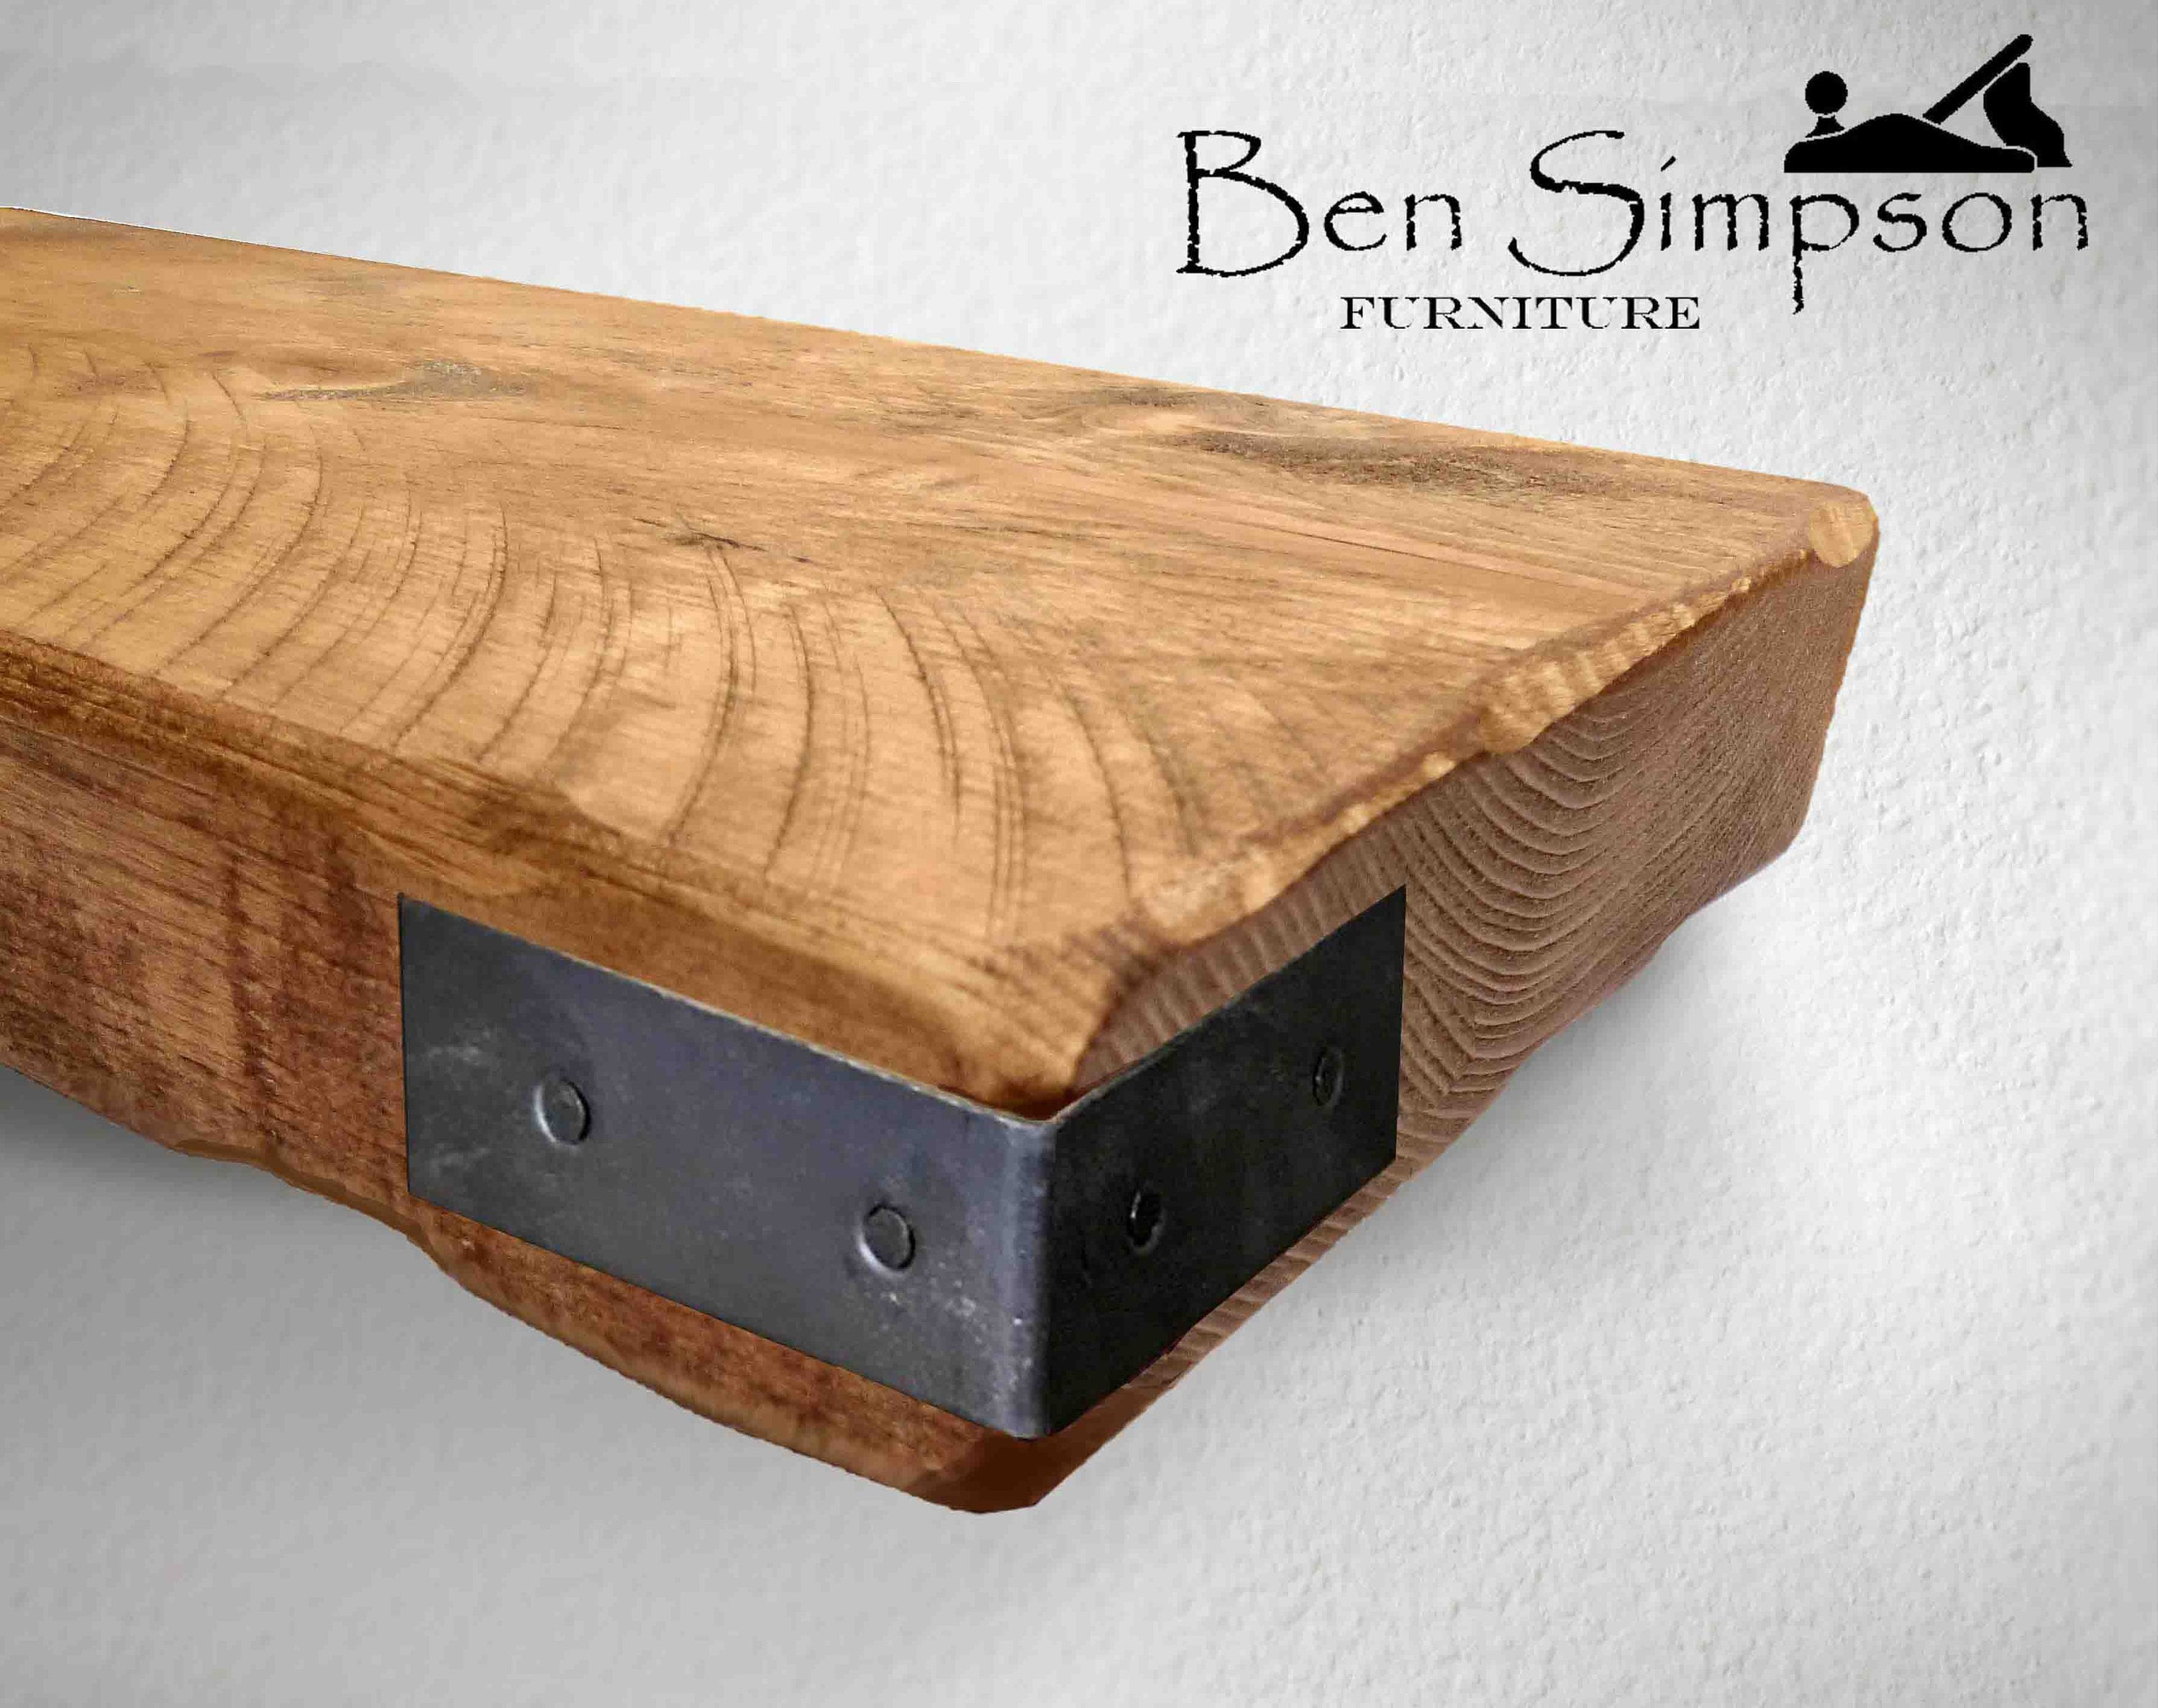 Rustic Floating Shelves Handcrafted Using Sustainable Solid Wood With  Corner Straps | 15cm Depth X 5cm Thickness | Ben Simpson Furniture